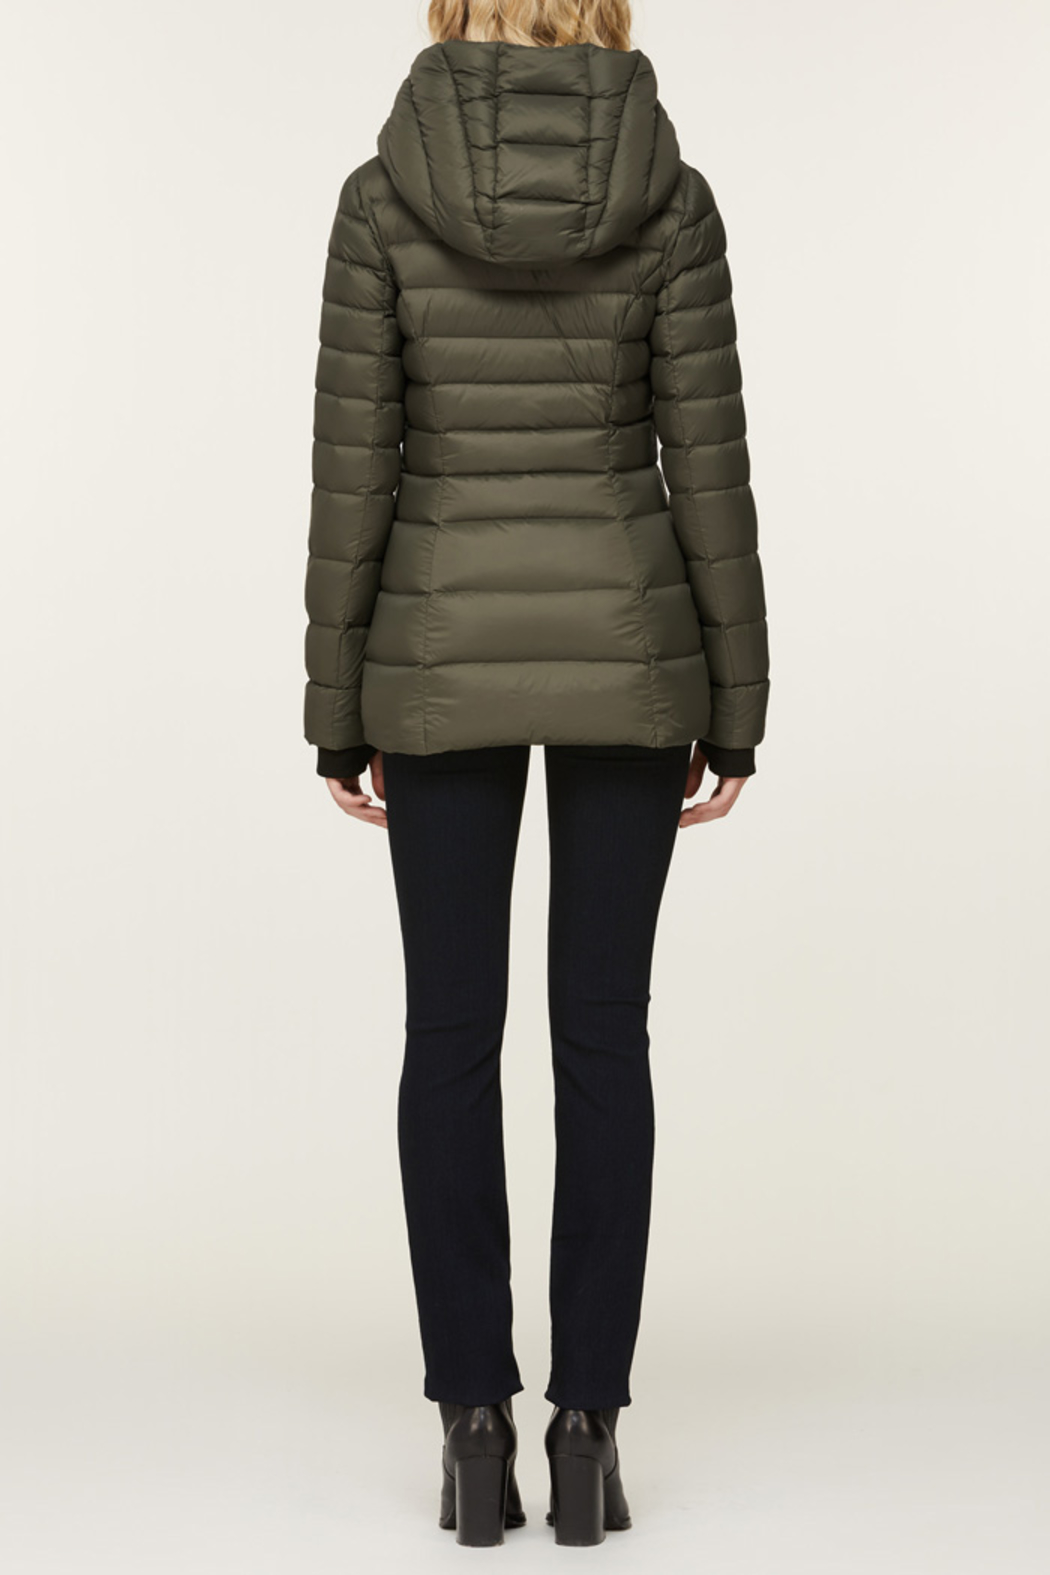 Soia & Kyo SOIA & KYO LIGHTWEIGHT DOWN COAT - Back Cropped Image